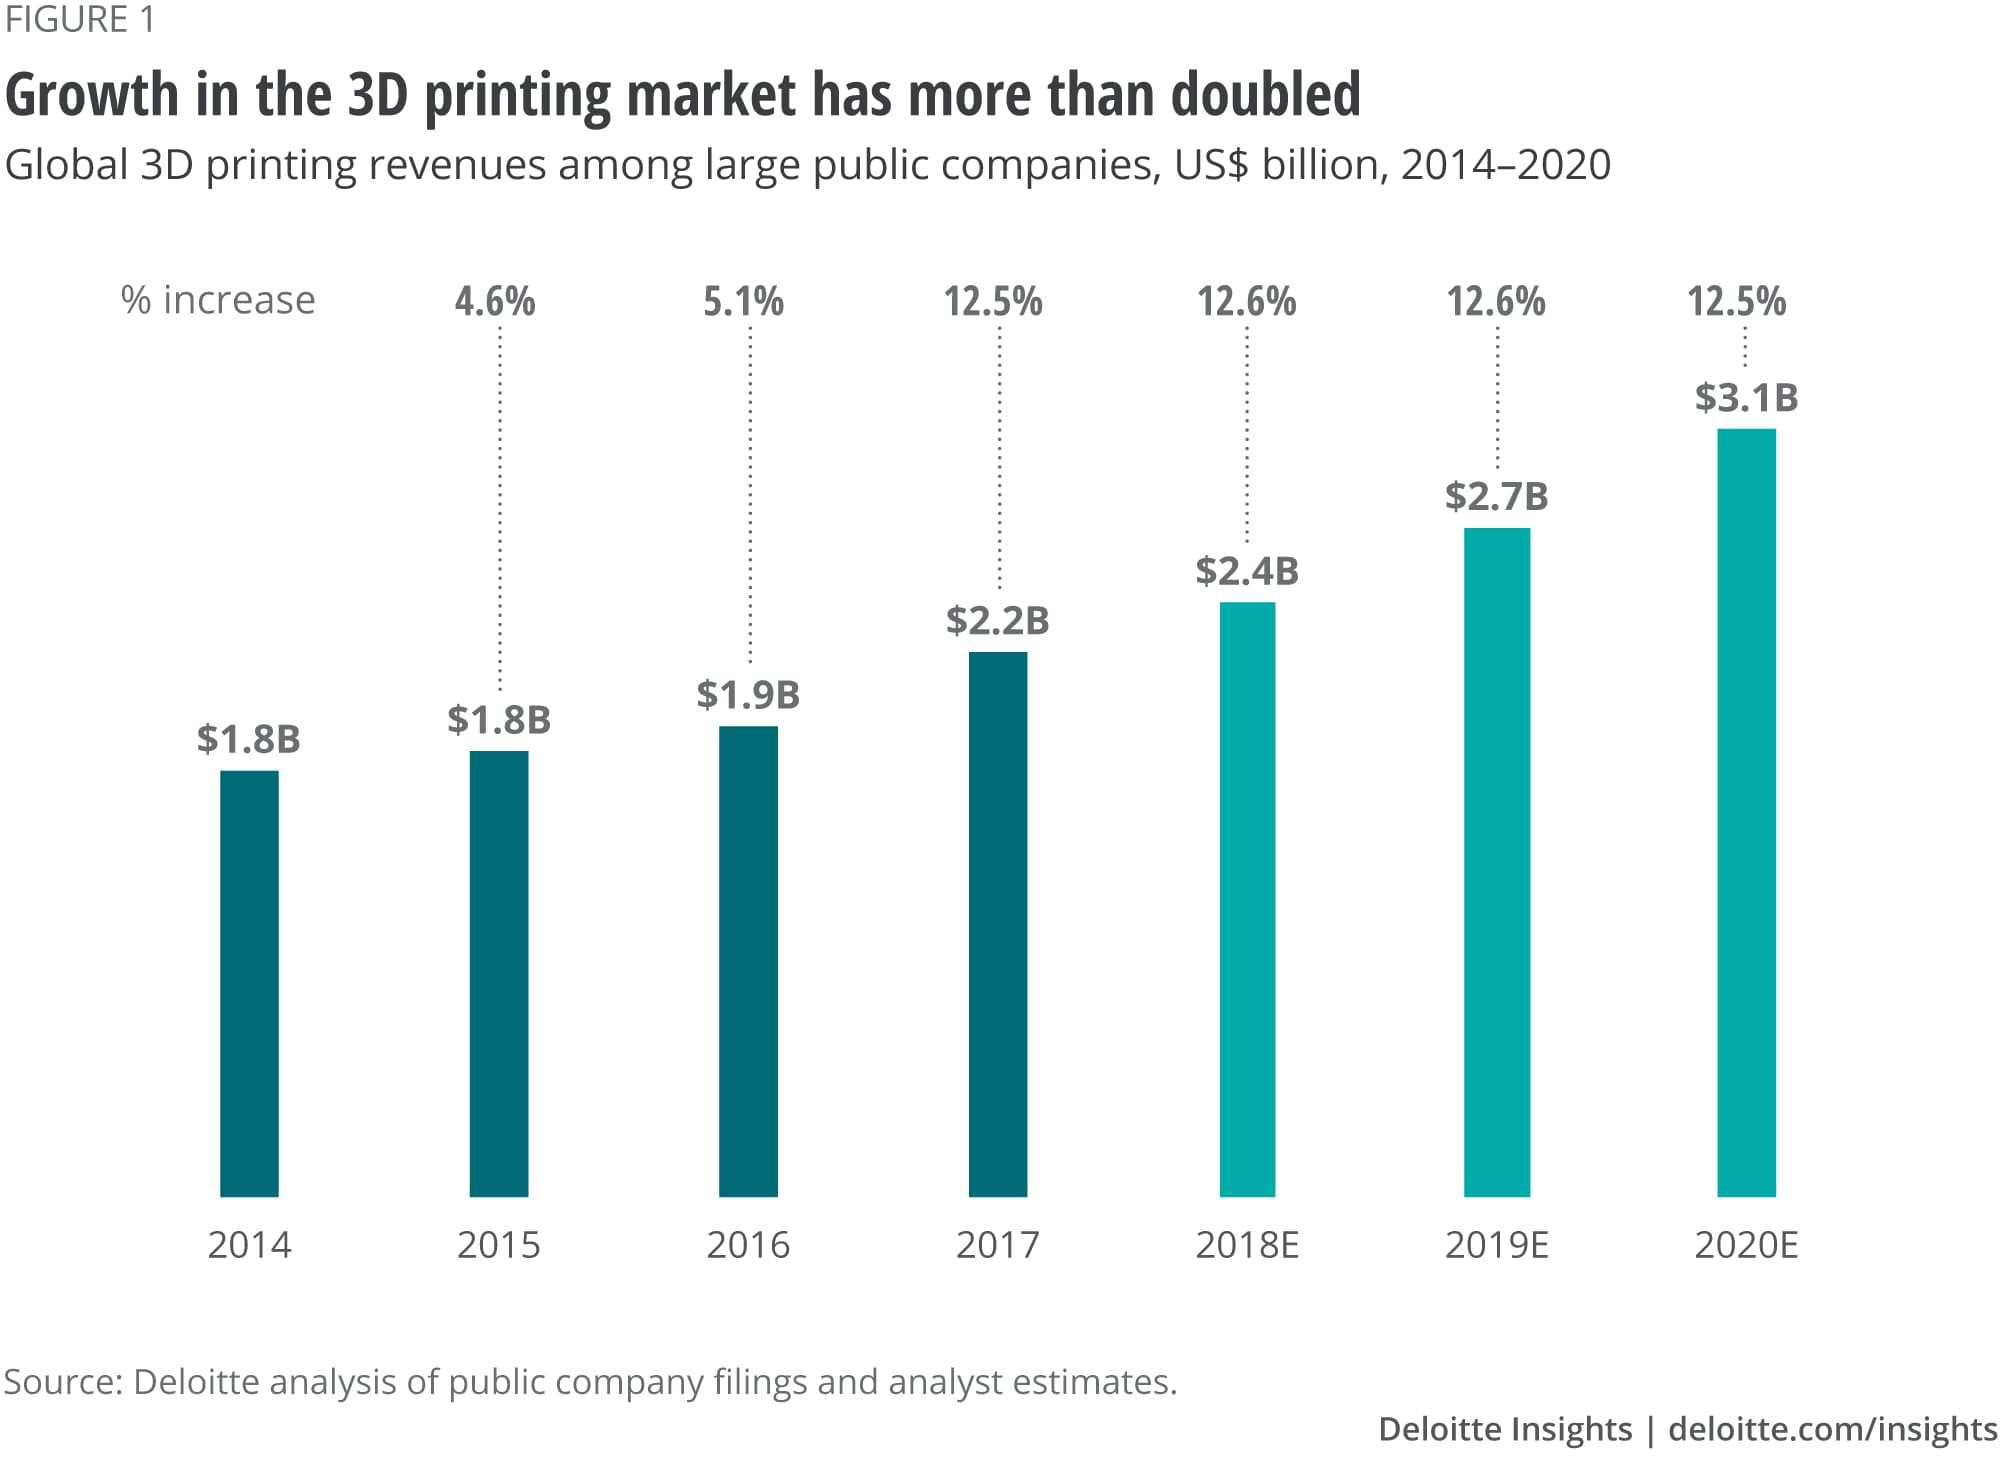 Growth in the 3D printing market has more than doubled